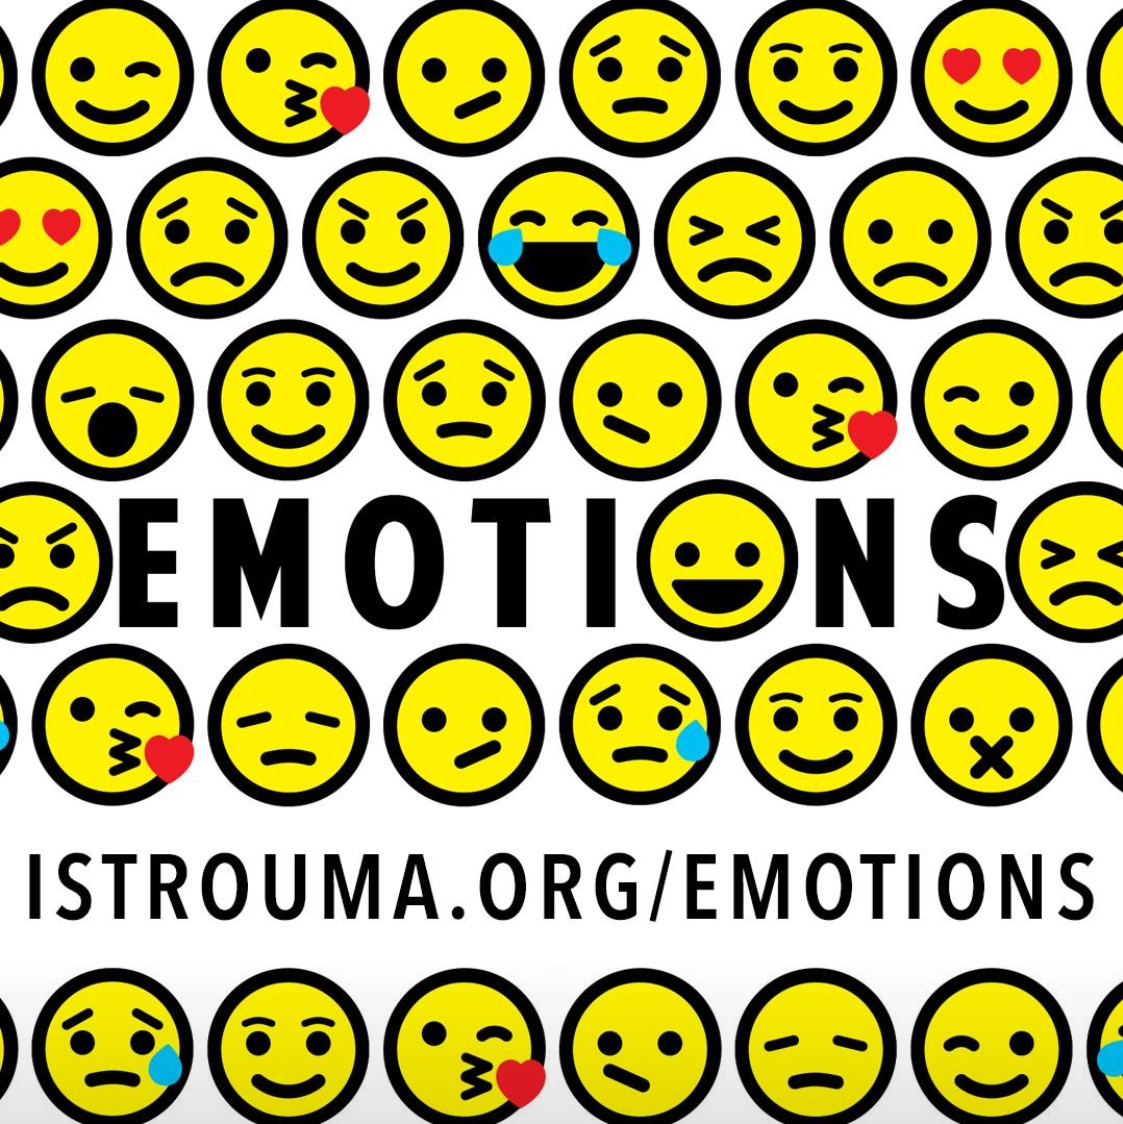 Emotions: Week 5, August 7, 2016